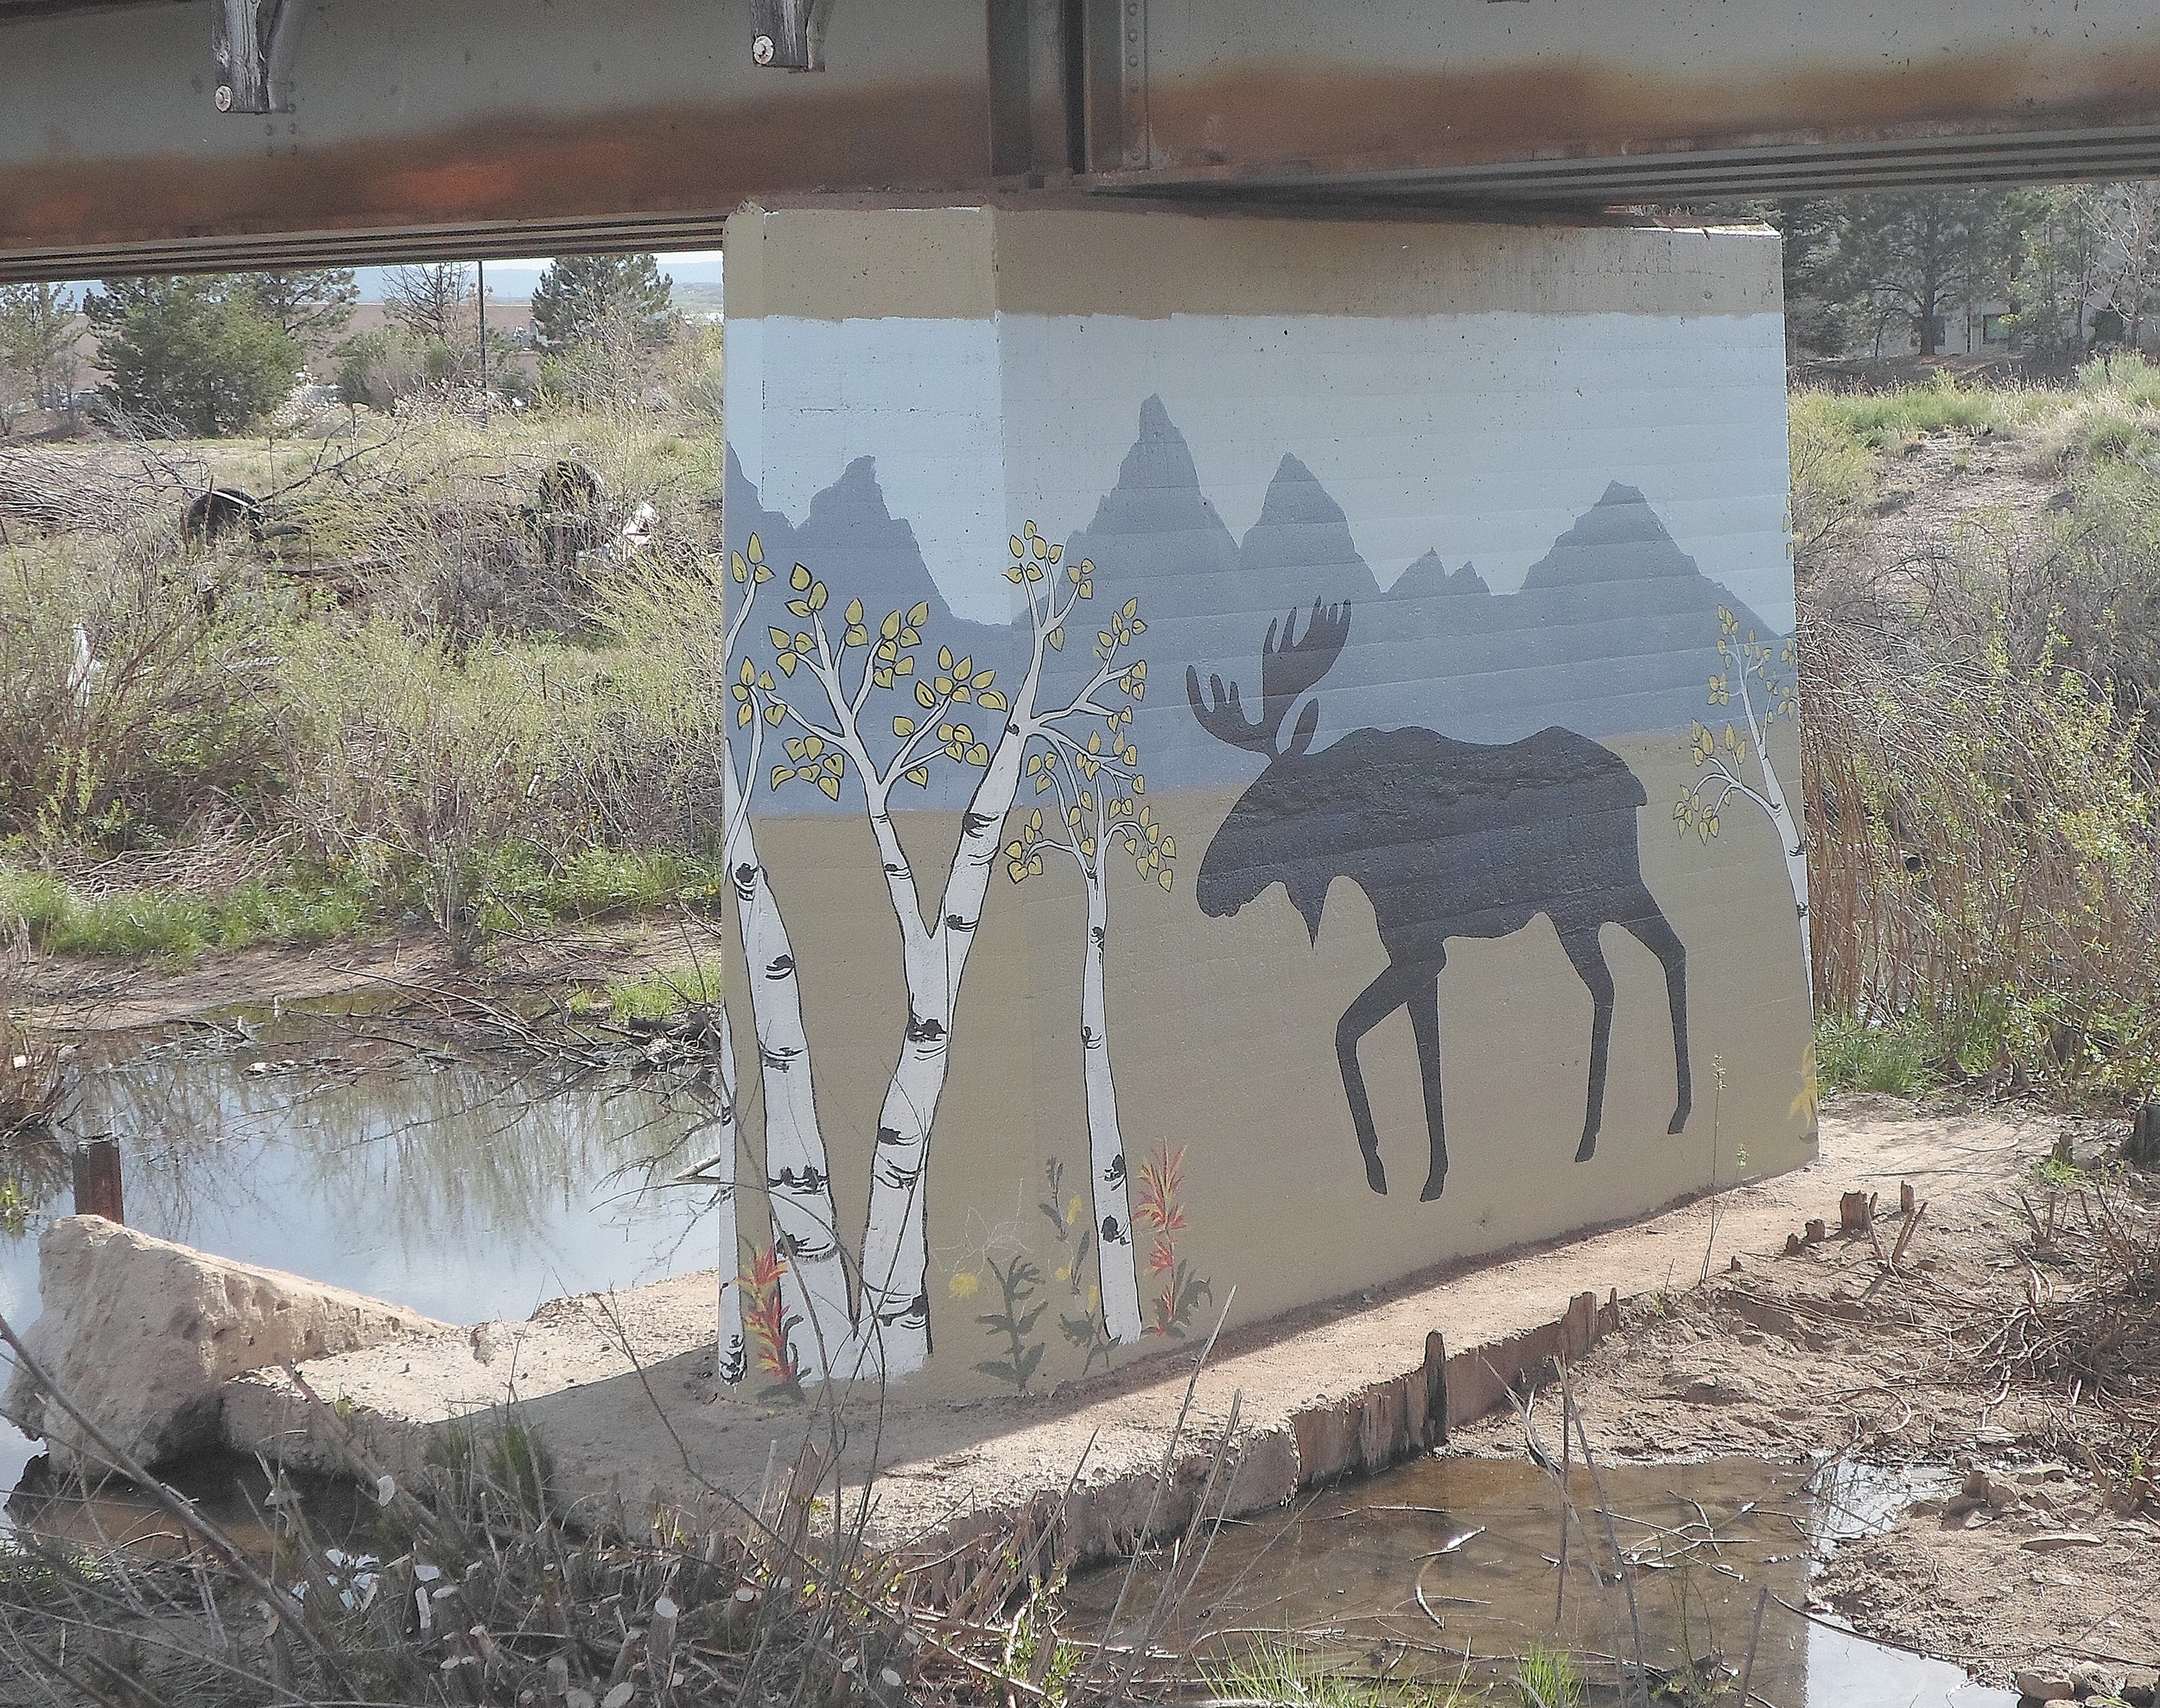 The underpass on the East Plum Creek Trail near the train tracks has been painted with a nature-themed mural. Local artists Janene DiRico-Cable, Kim McKie and Rosie Lonhert created the artwork.